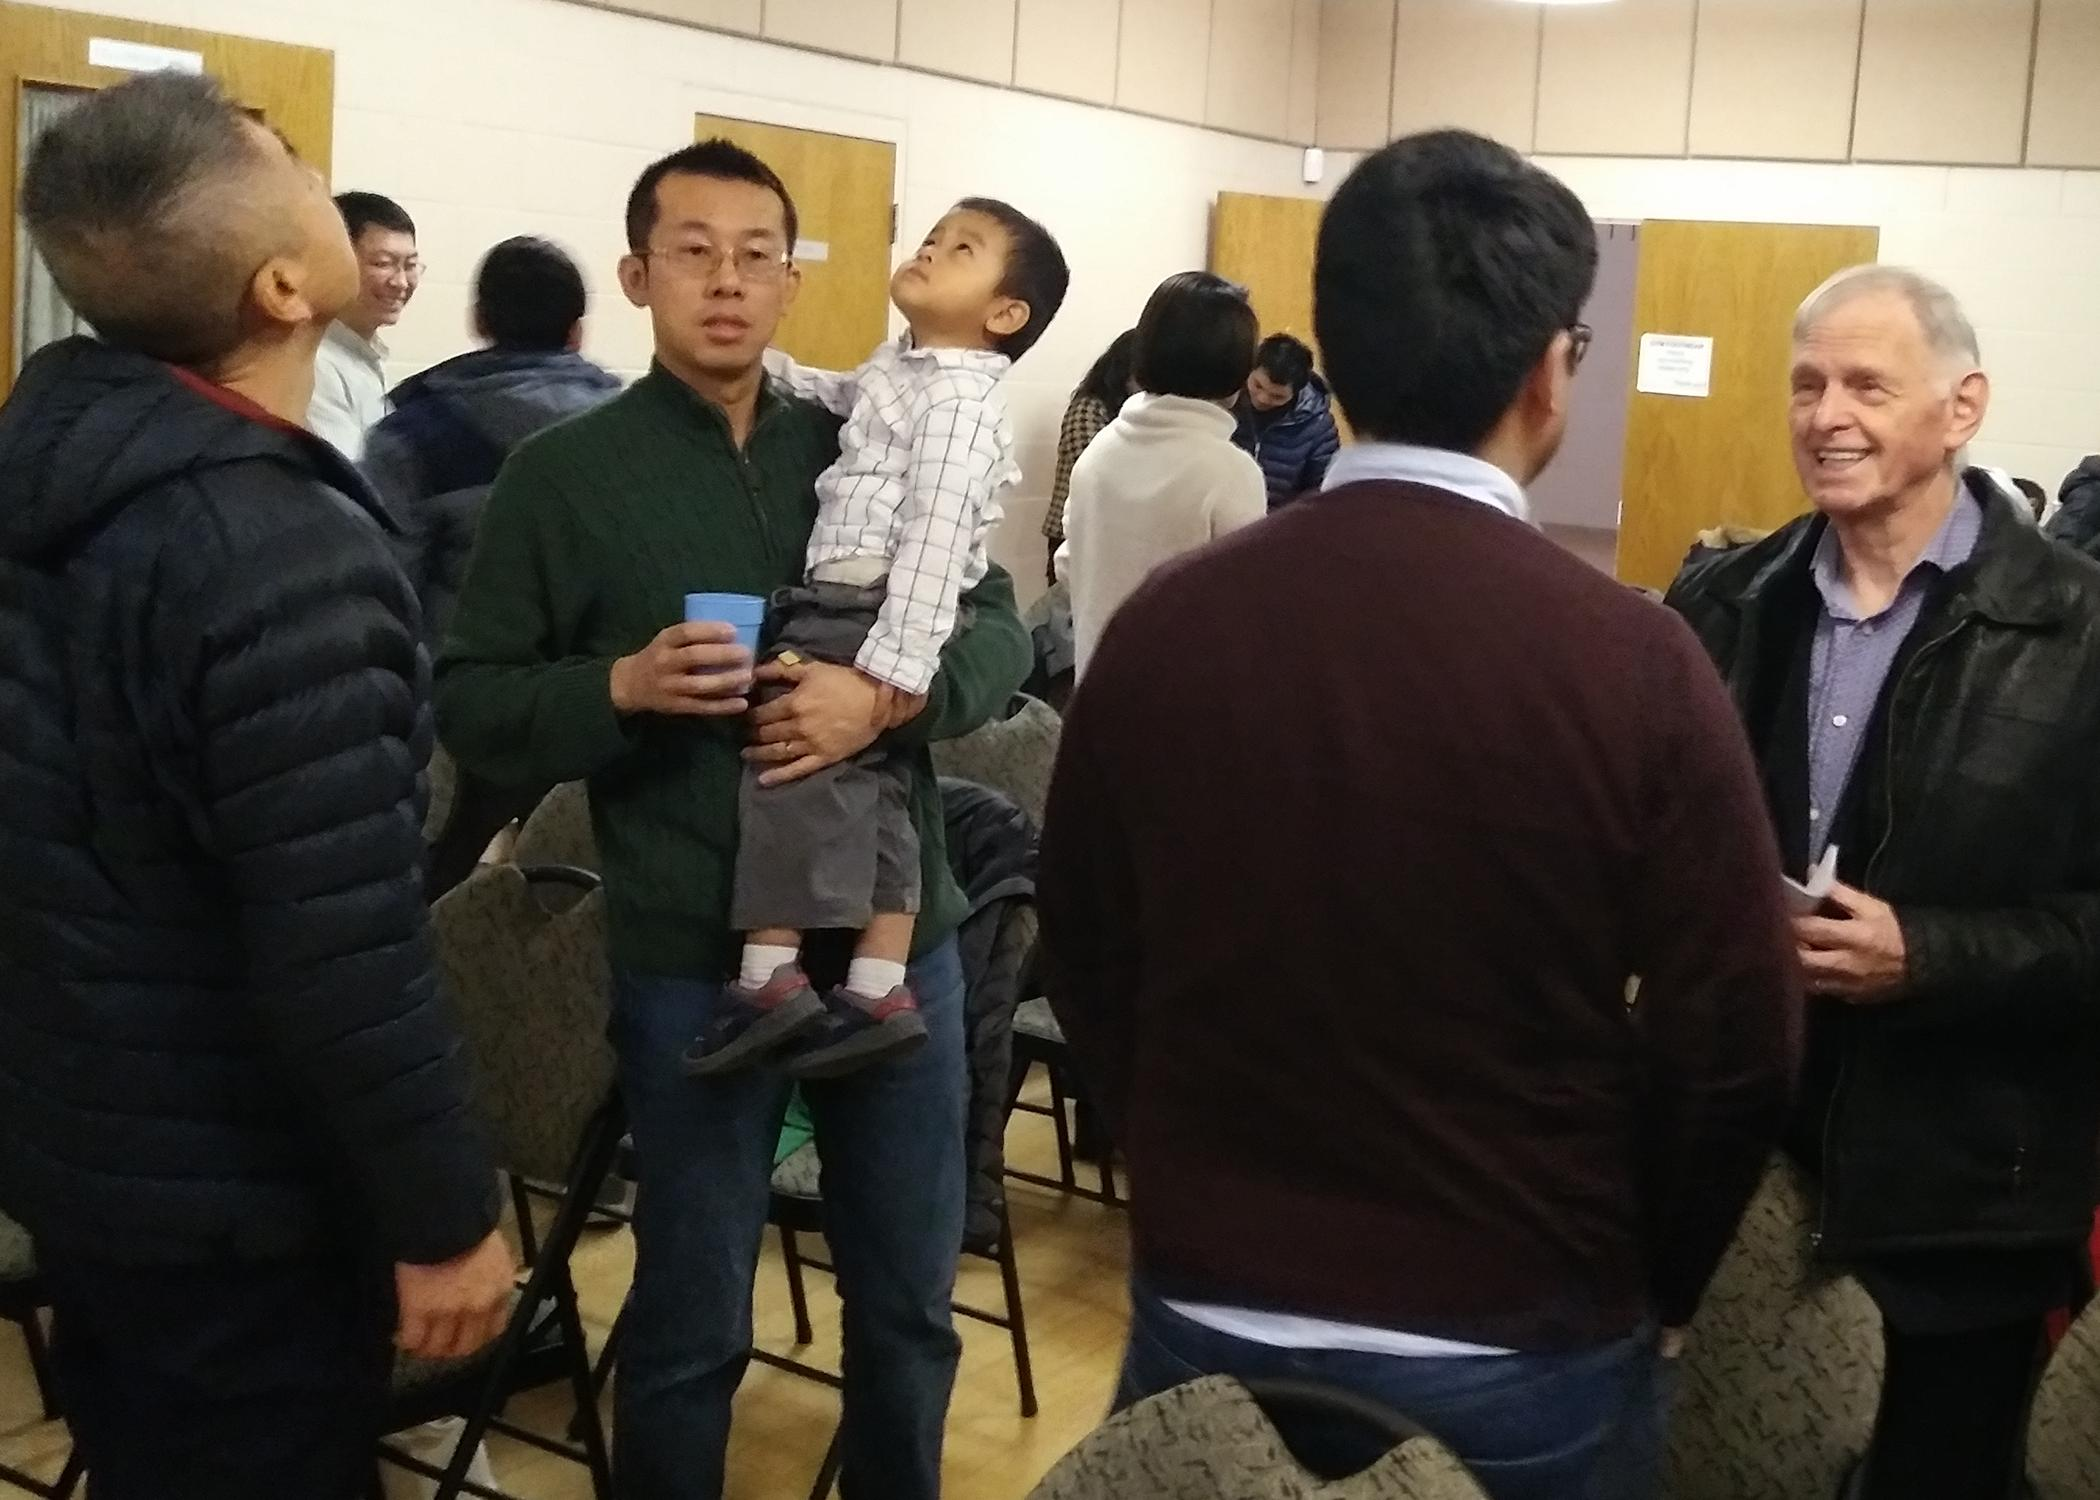 Congregation Draws on Immigrant Experience in Outreach to Chinese Newcomers